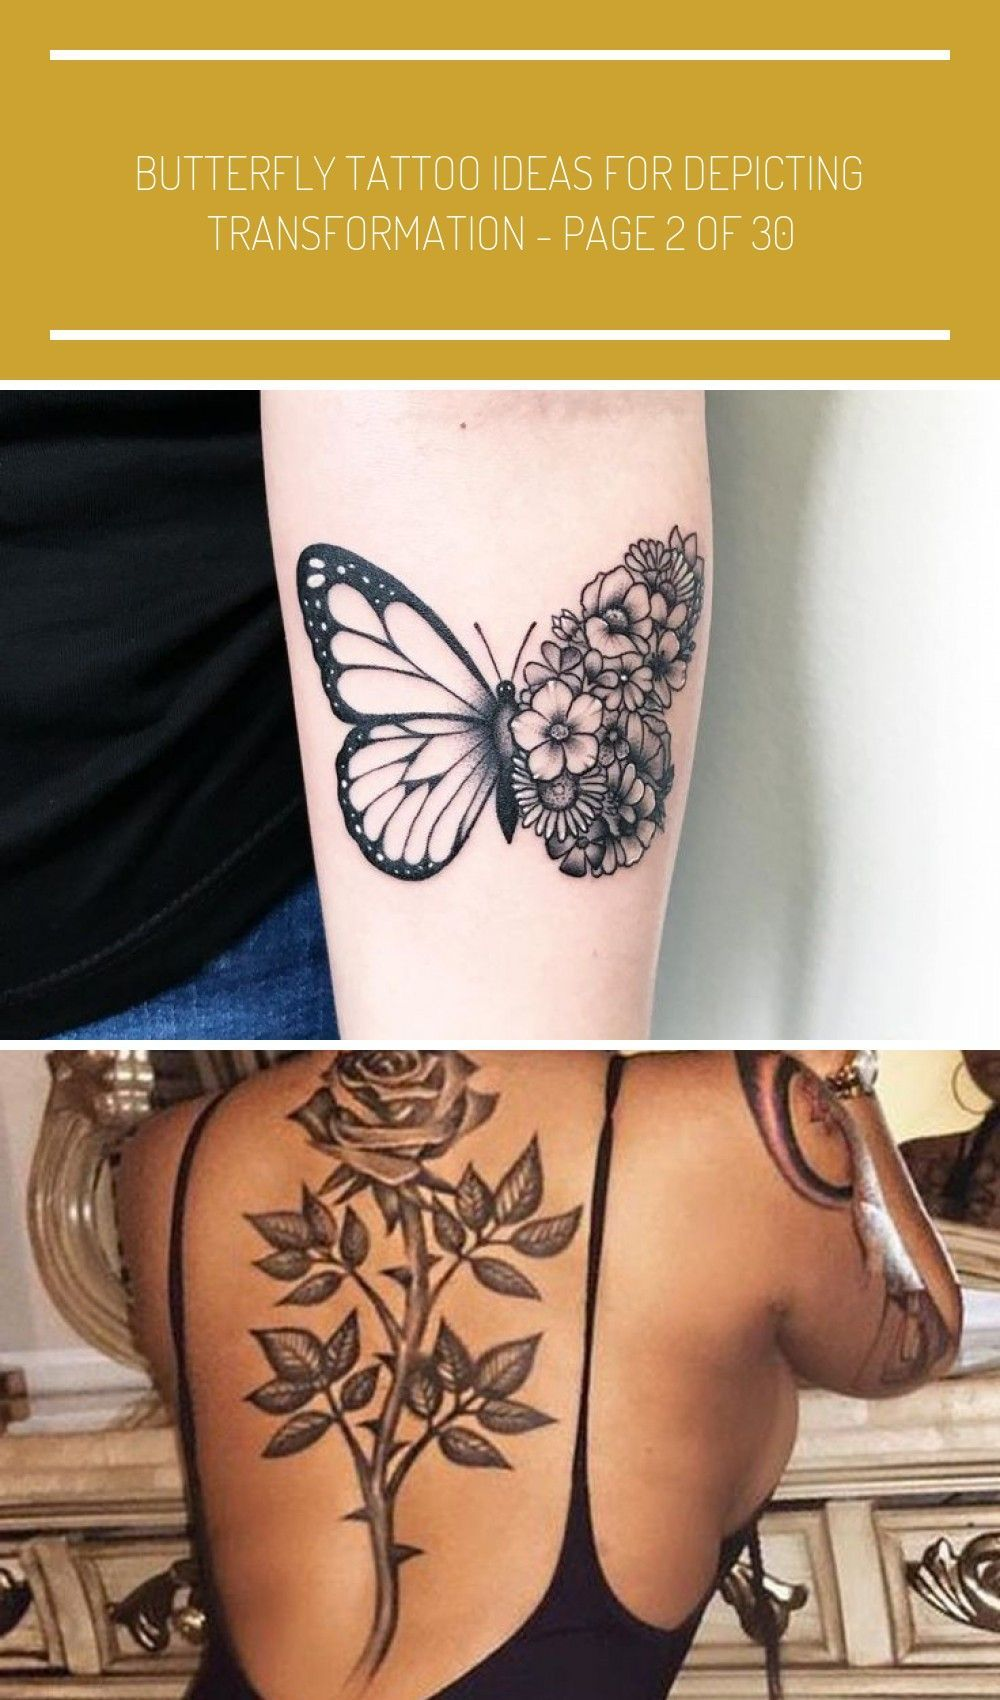 Butterfly Tattoo Ideas for Depicting Transformation tattoos,tattoos for women,ta… - Famous Last Words